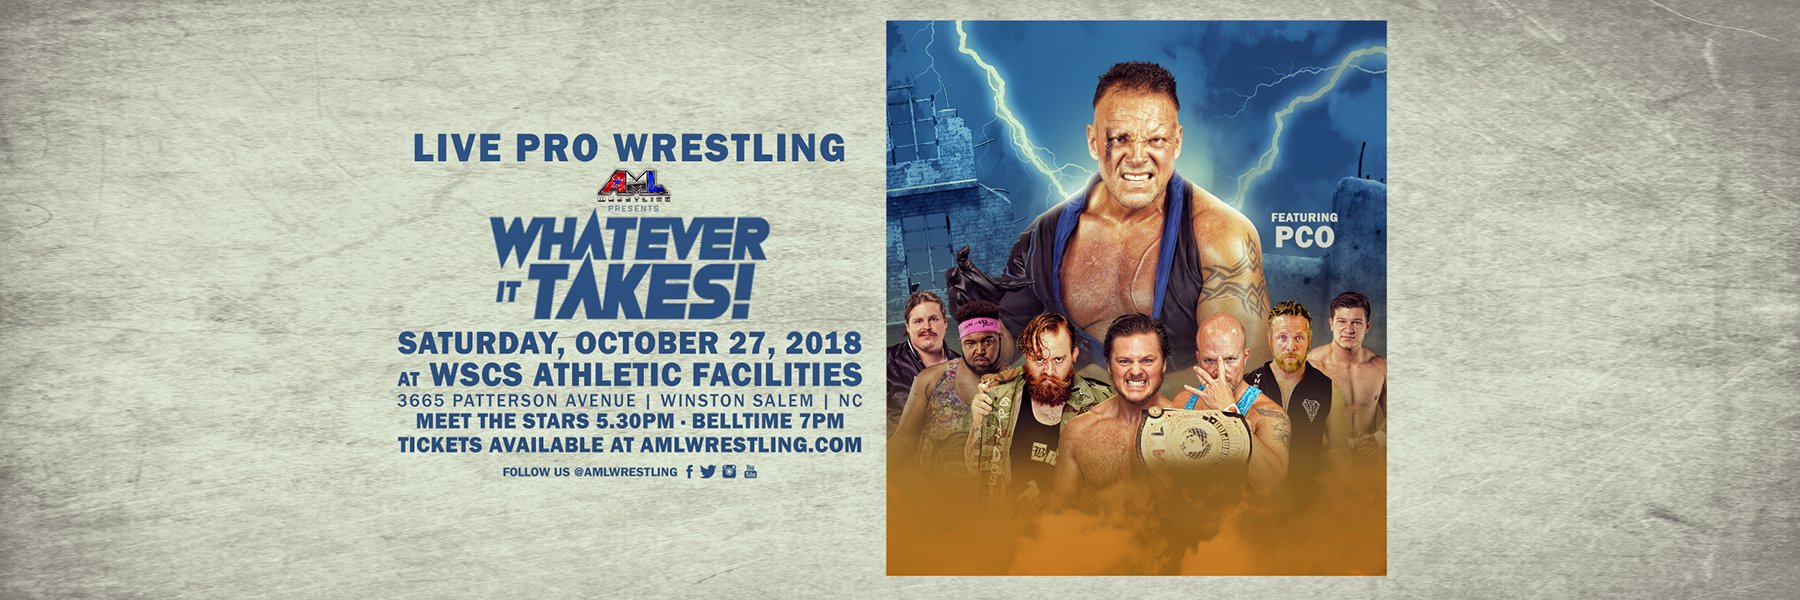 AML Wrestling - Whatever It Takes | PCO vs Caleb Konley in Main Event!